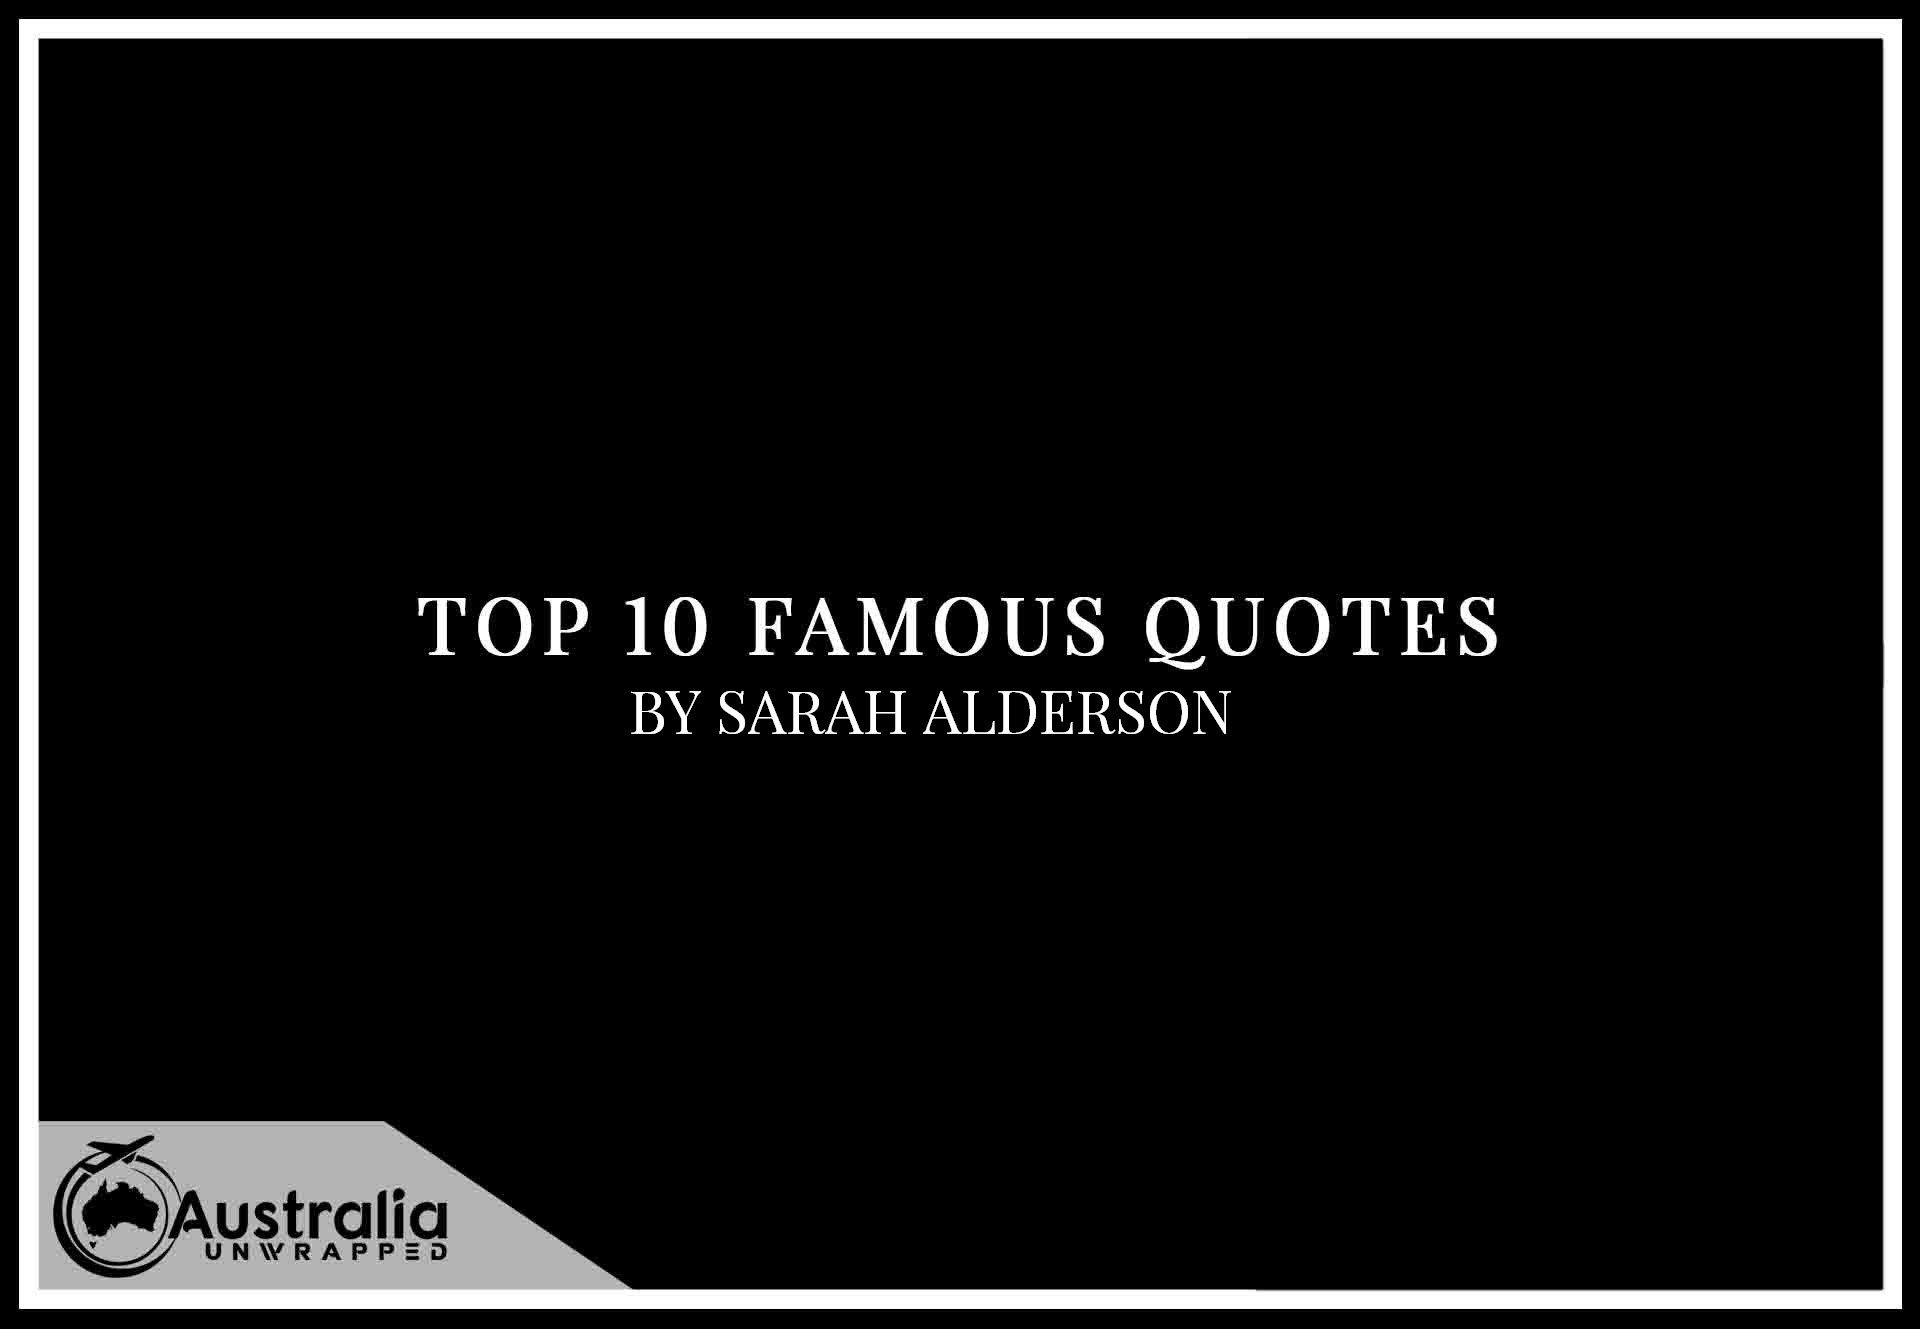 Top 10 Famous Quotes by Author Sarah Alderson